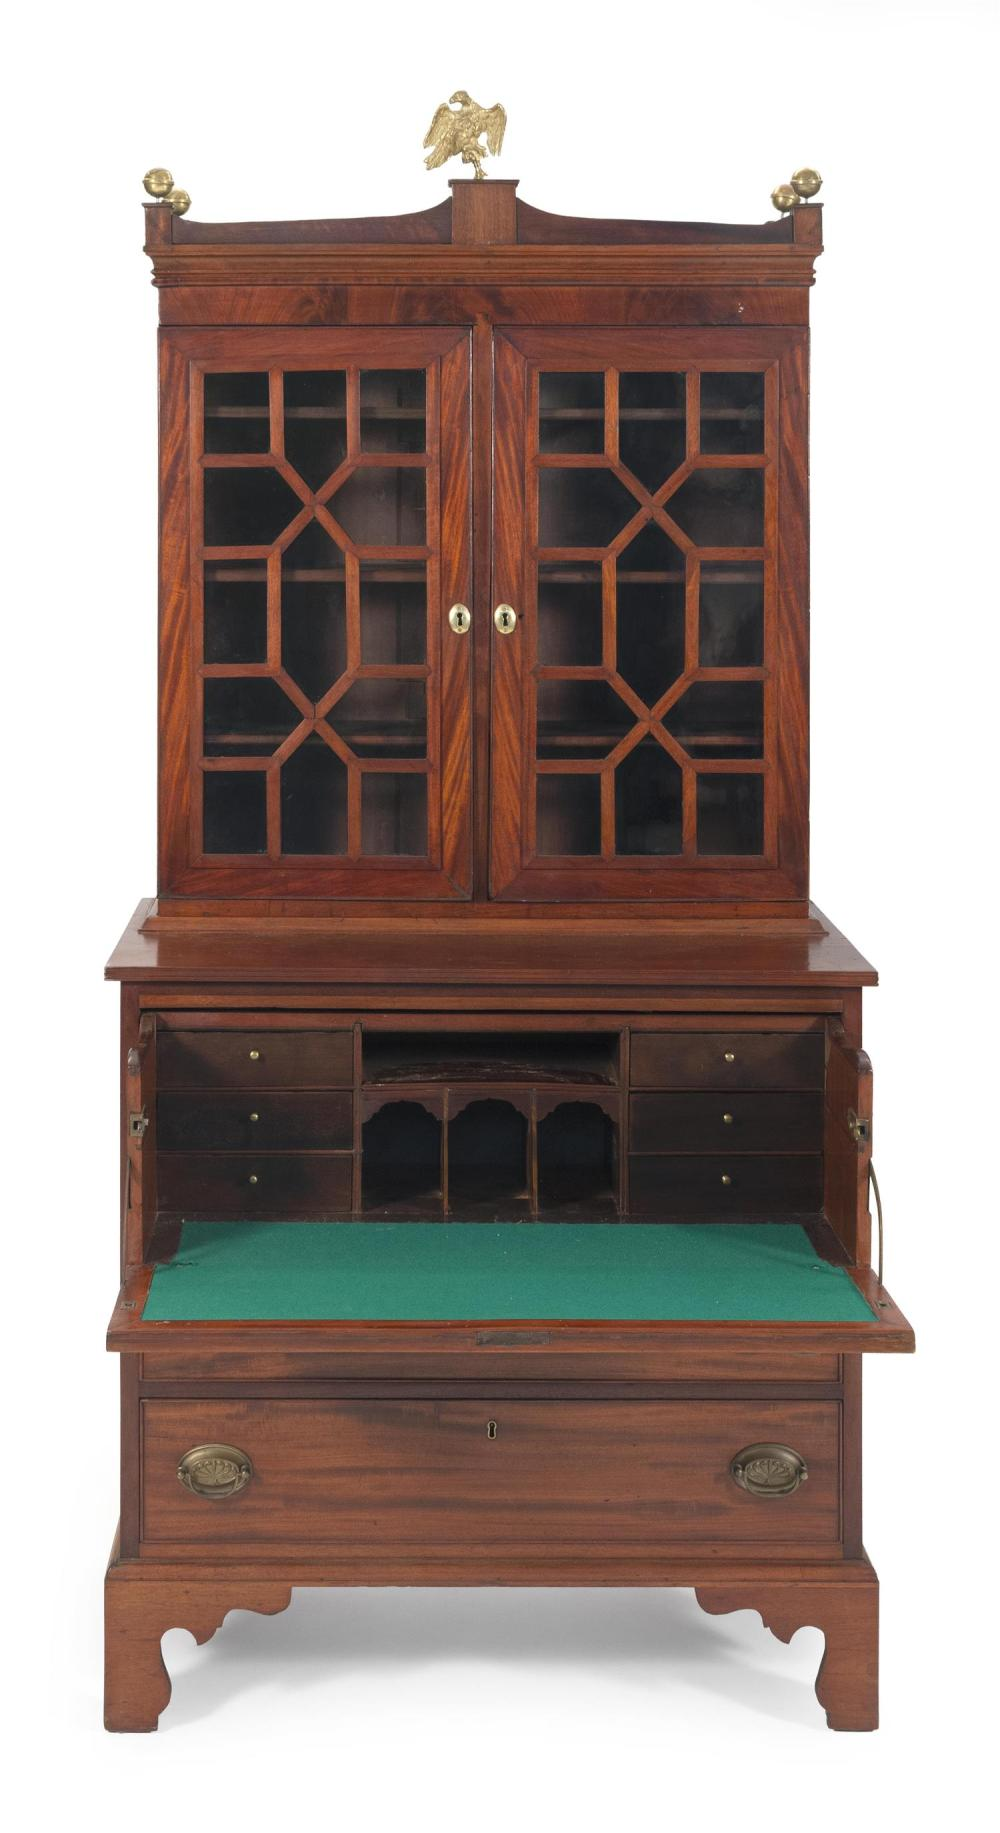 FEDERAL TWO-PART SECRETARY In mahogany and mahogany veneer. Upper portion with shaped cornice and two glazed doors enclosing three i...